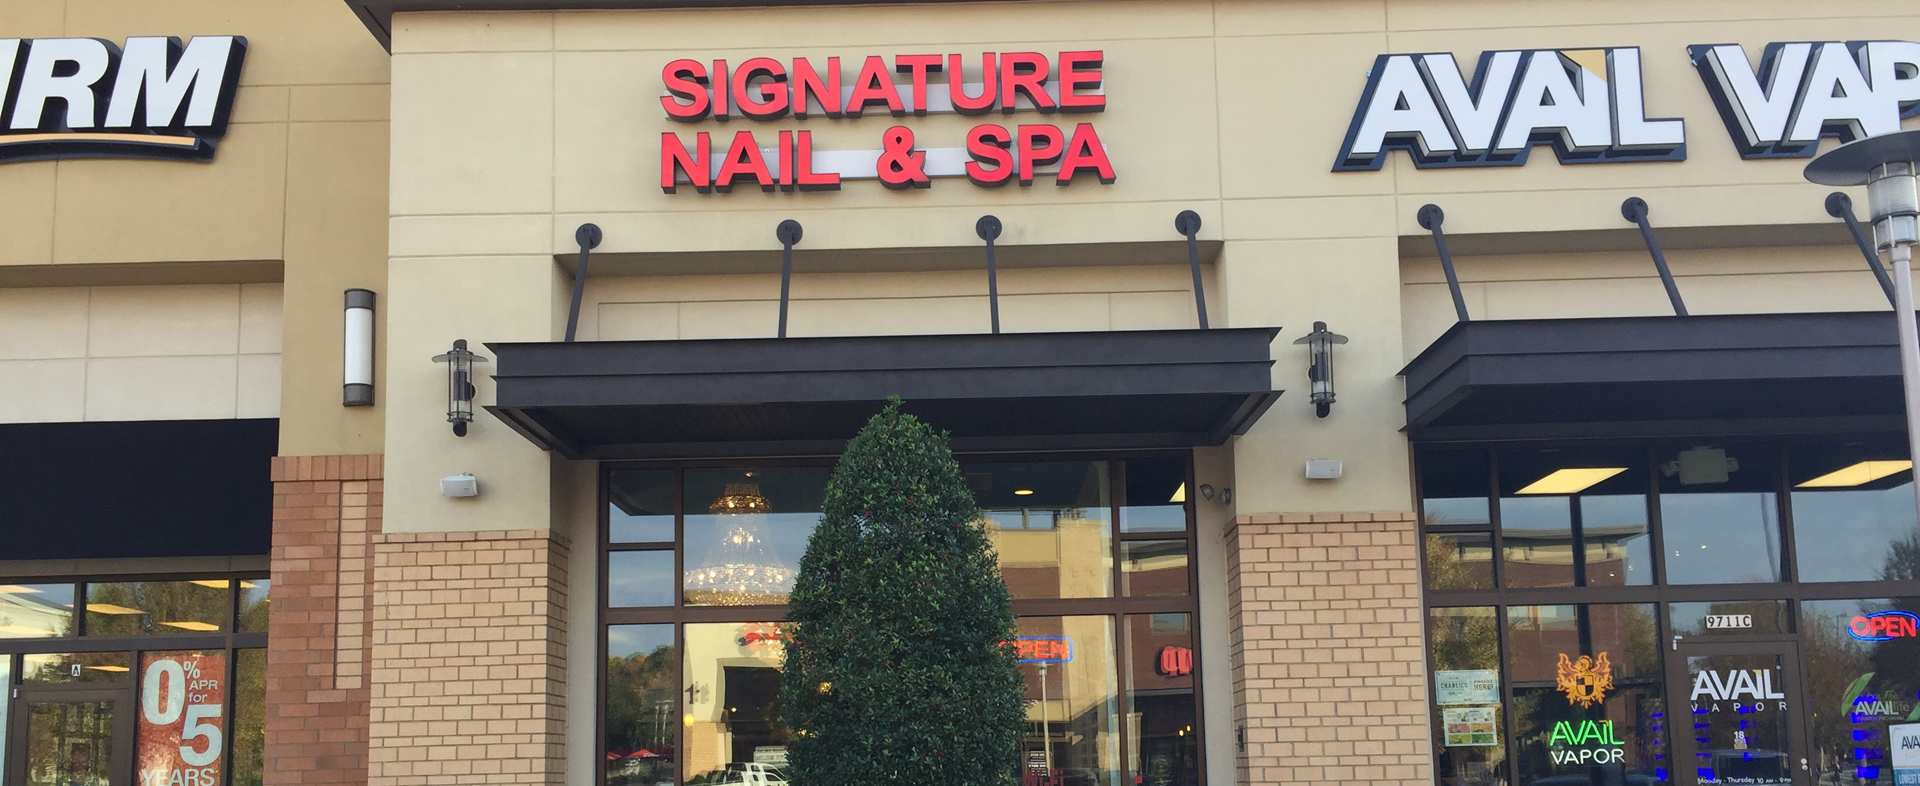 Signature Nail & Spa - Nail salon in Charlotte, NC 28216